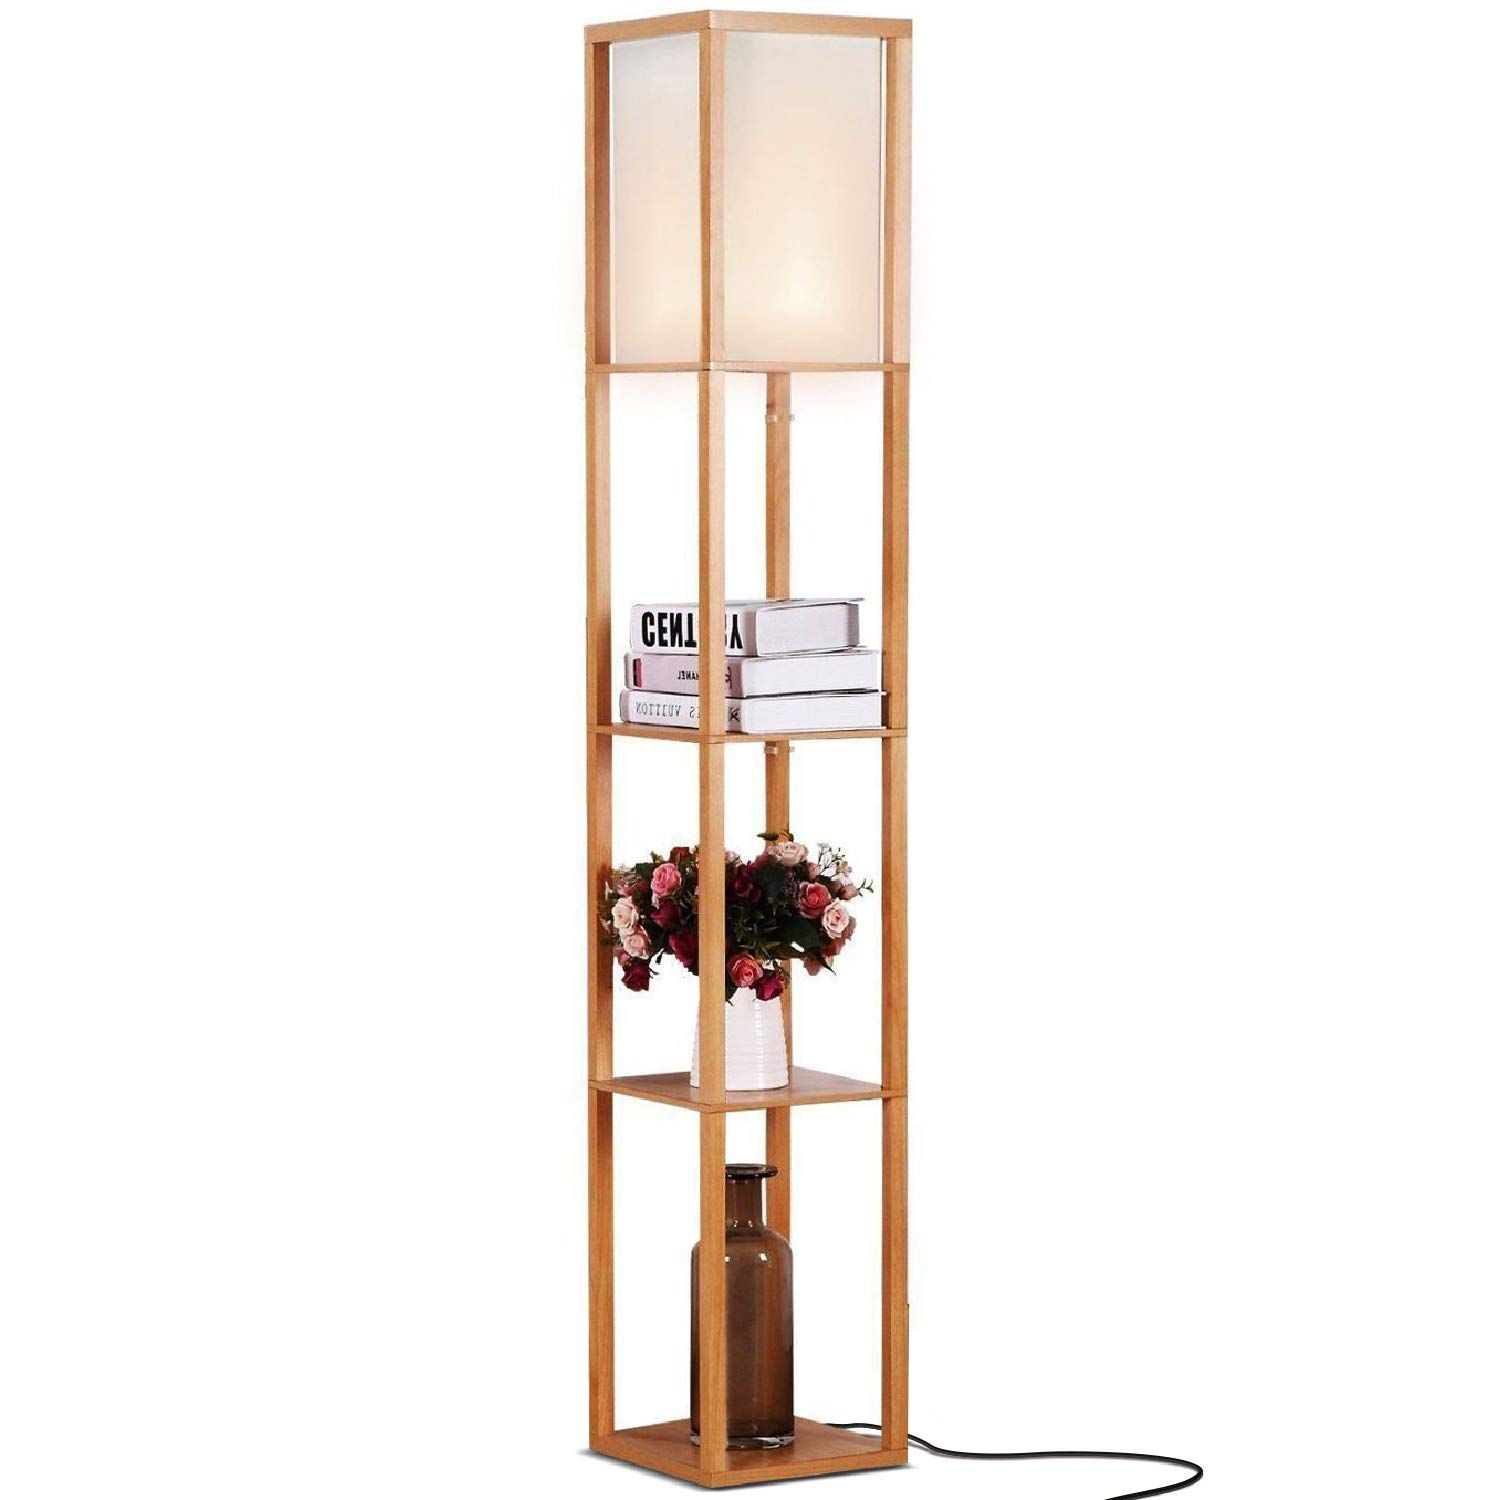 Brightech Maxwell Led Shelf Floor Lamp Modern Asian Style Standing Lamp With Soft Diffused Uplight Wh Floor Lamp With Shelves Wooden Floor Lamps Floor Lamp